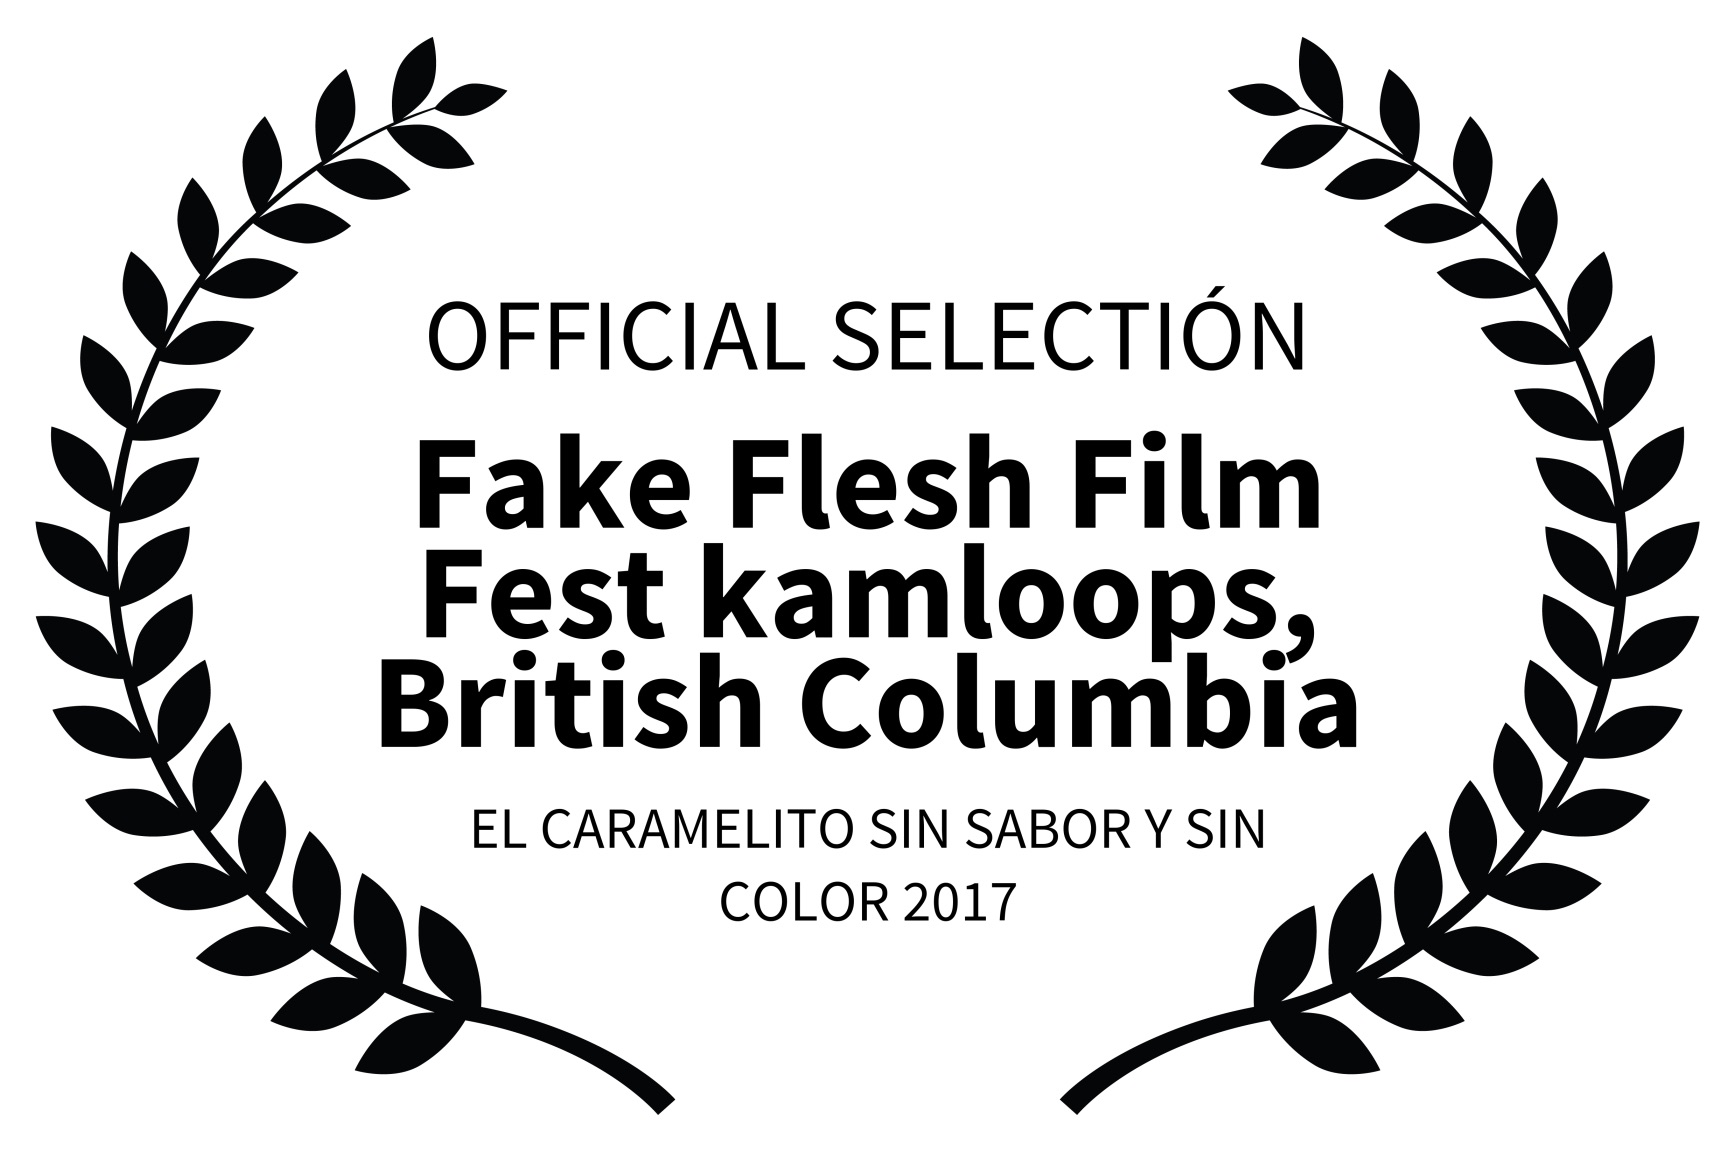 OFFICIAL SELECTIN - Fake Flesh Film Fest kamloops British Columbia - EL CARAMELITO SIN SABOR Y SIN C